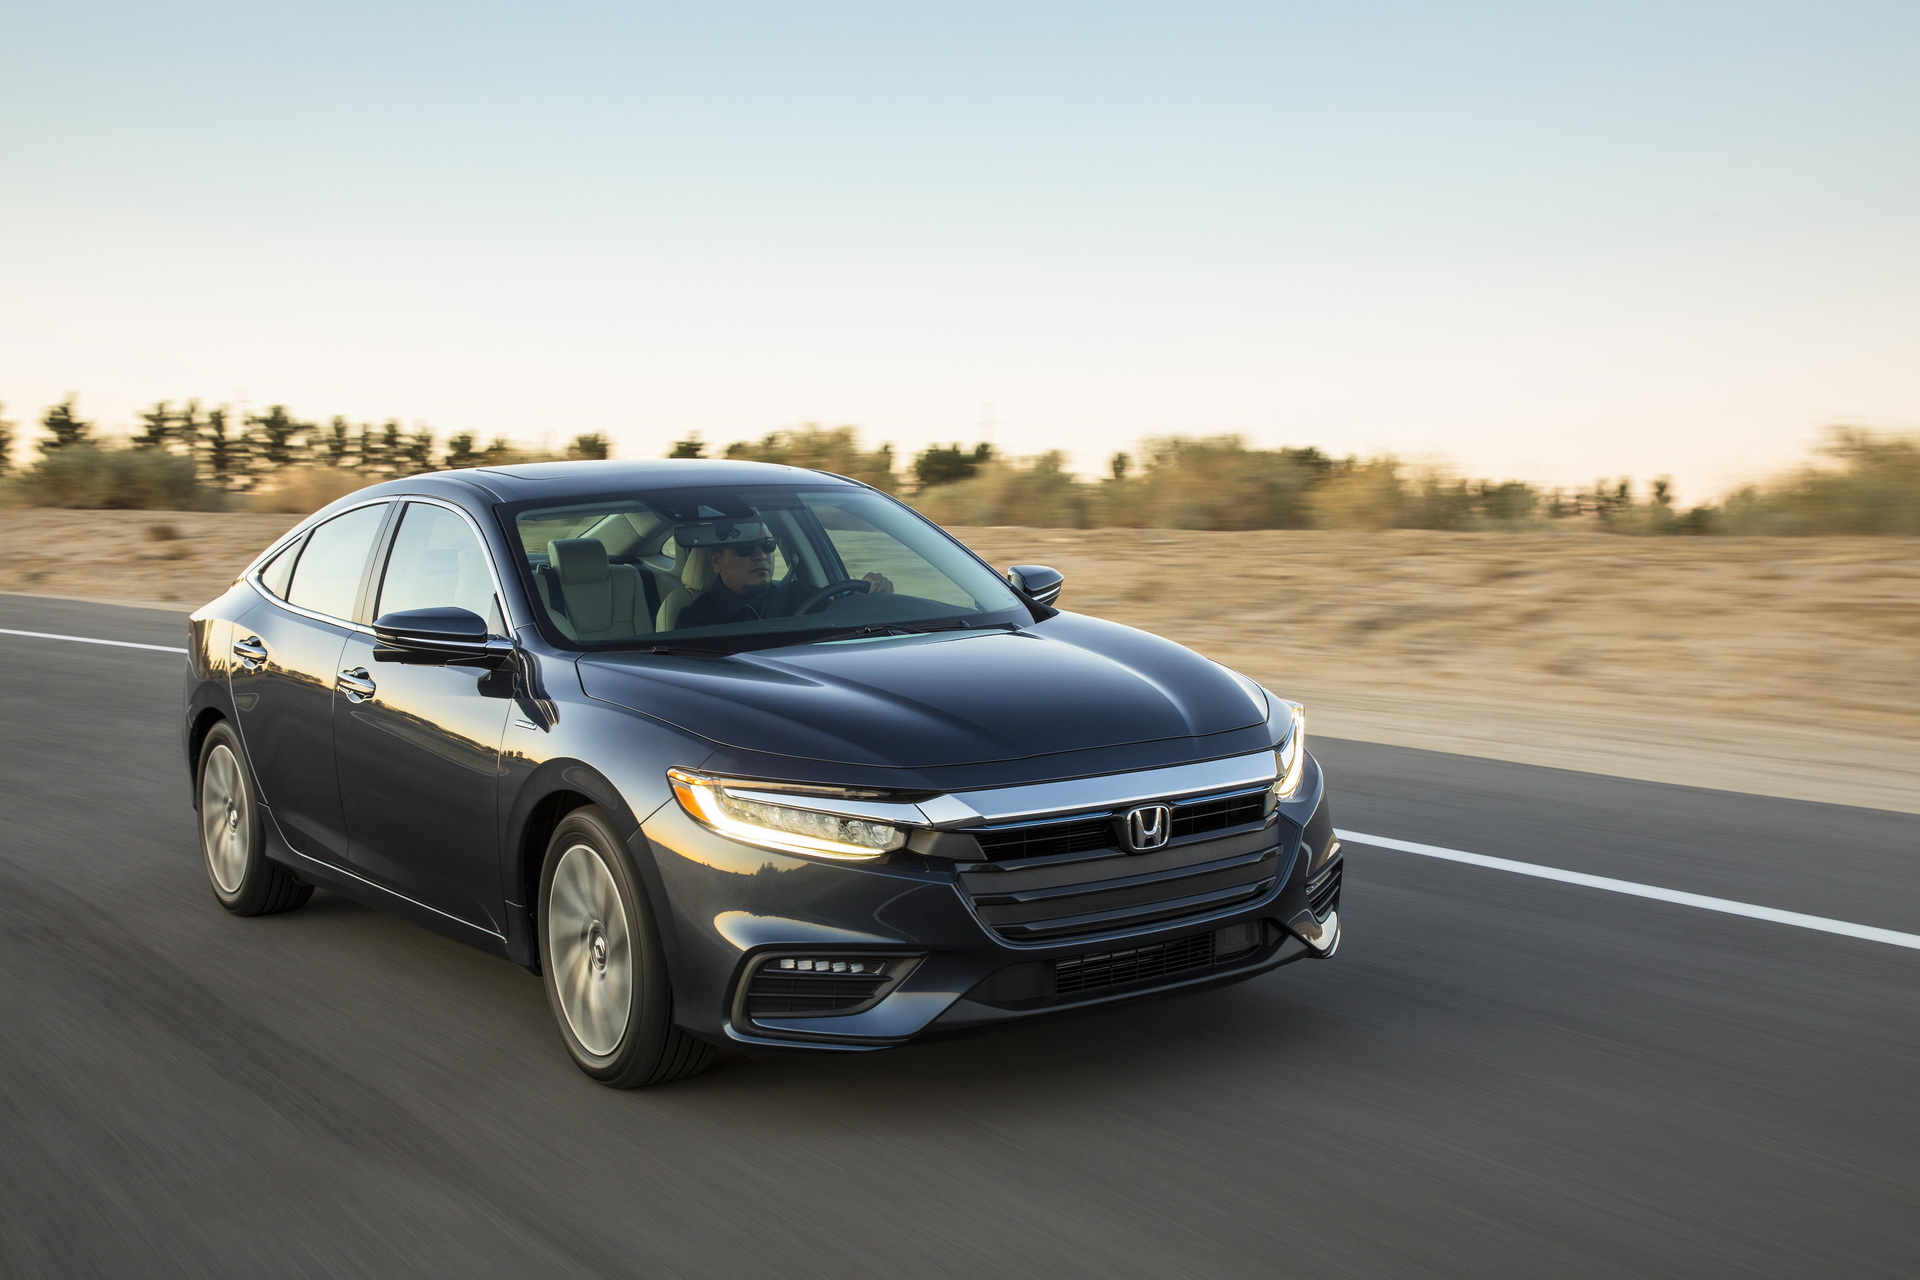 2019-HondaInsight-02.jpg